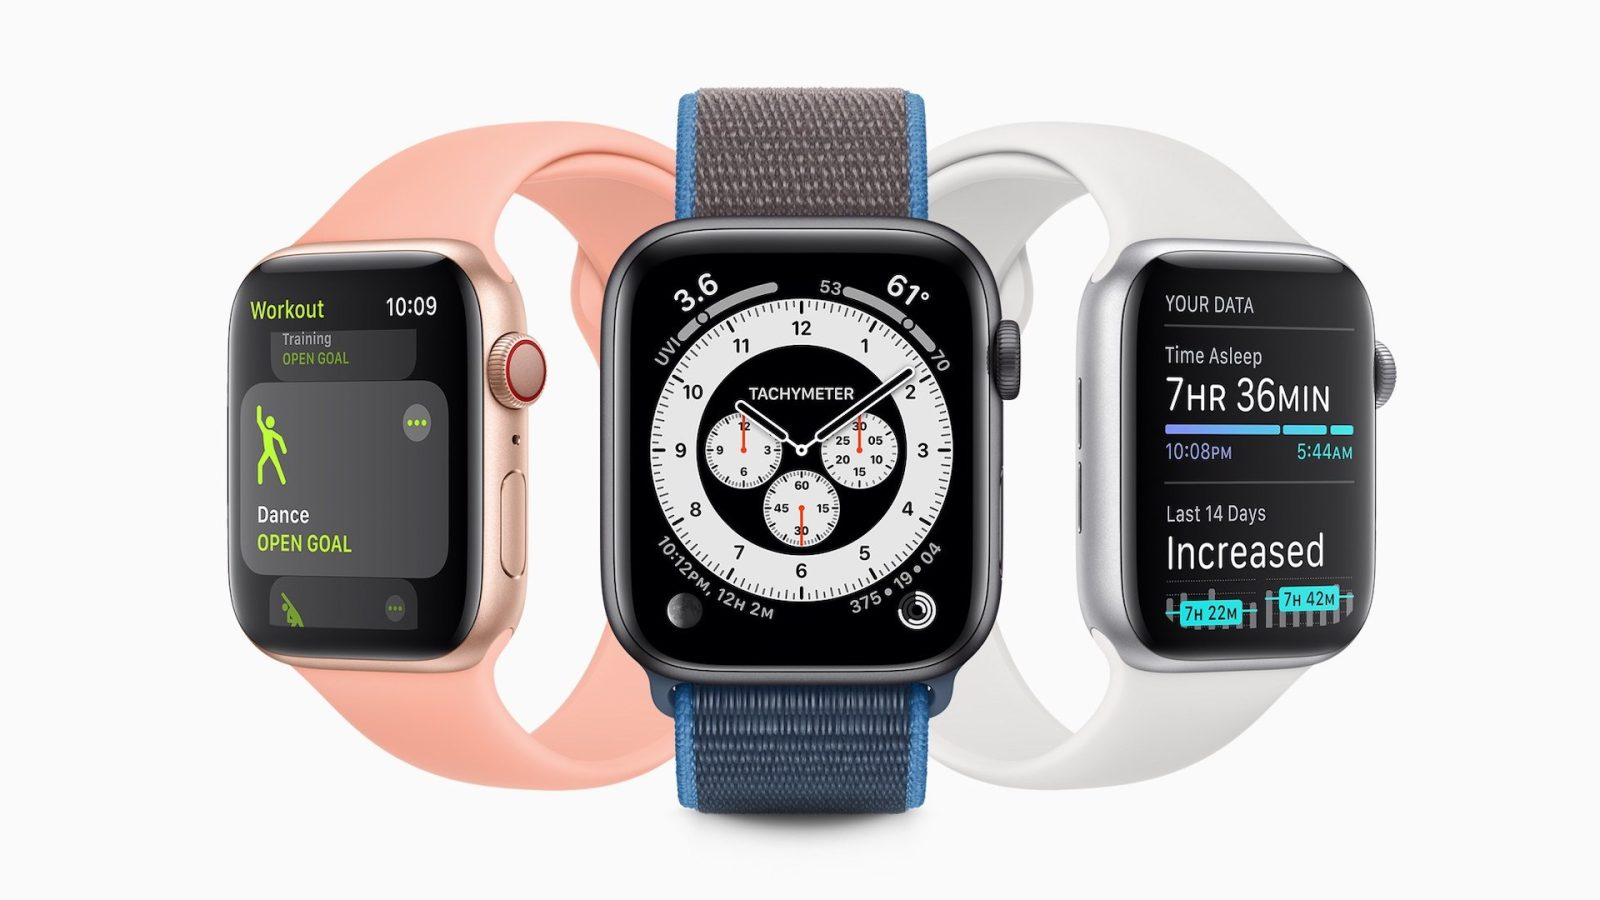 Apple releases watchOS 7.1 beta 4 to developers with two different builds